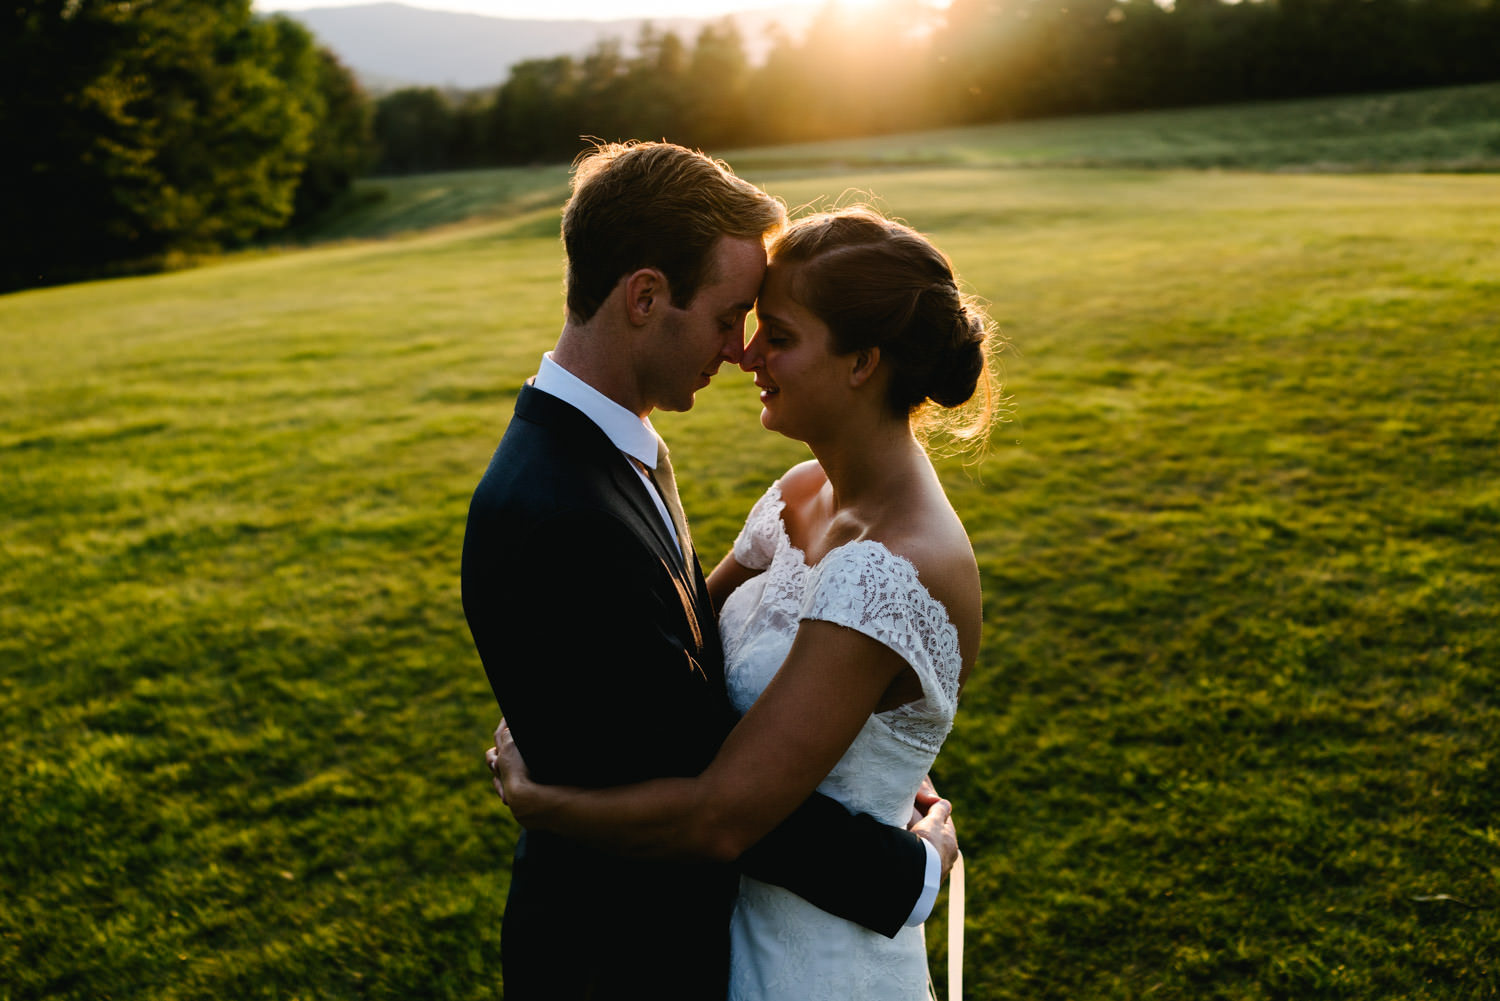 vermontbarn_destinationweddingphotographer_austendiamondphotography-6